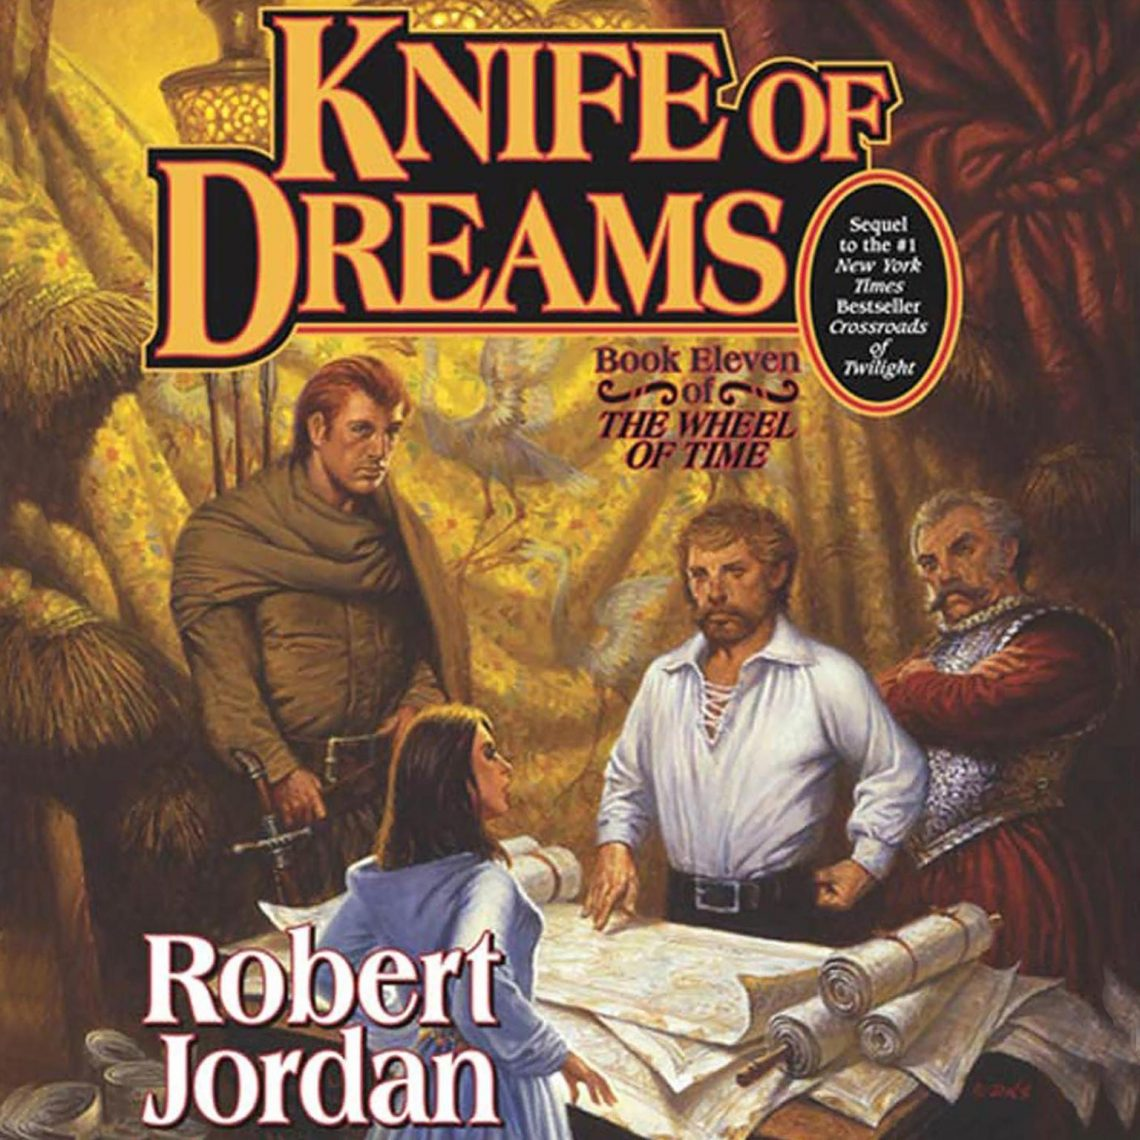 Knife of Dreams Audiobook Free Download